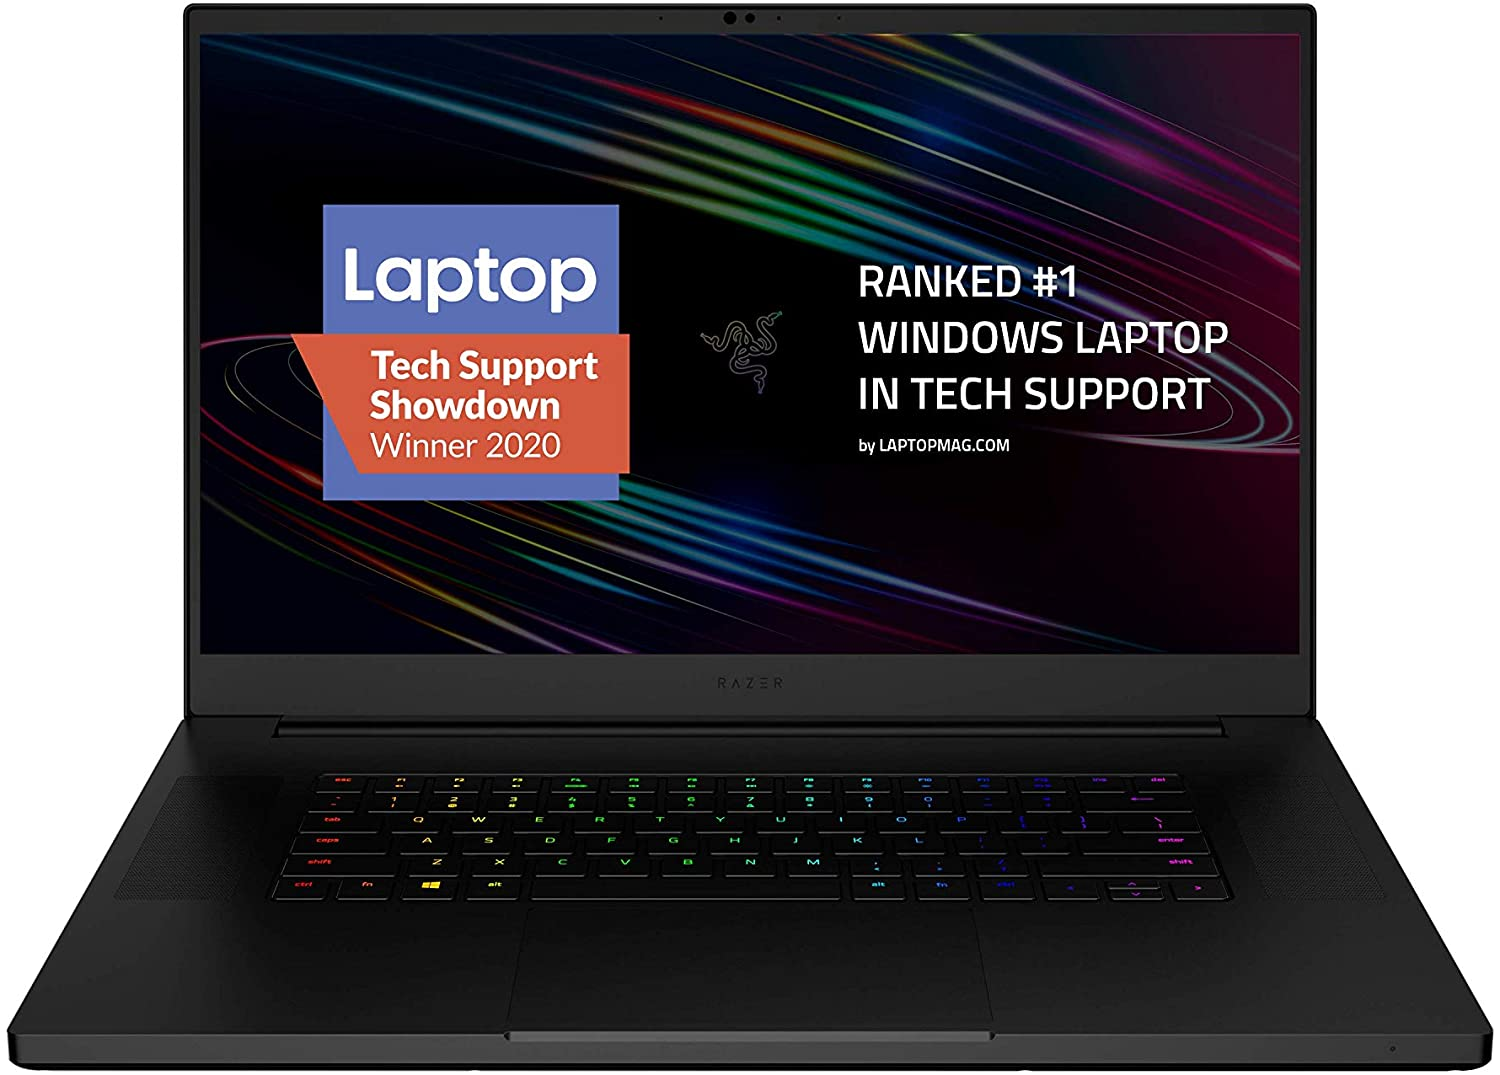 "Razer Blade Pro 17 Gaming Laptop 2020: Intel Core i7-10875H 8-Core, NVIDIA GeForce RTX 2080 SUPER Max-Q, 17.3"" FHD 300Hz, 16GB RAM, 512GB SSD, CNC Aluminum, Chroma RGB, Thunderbolt 3, SD Card Reader"